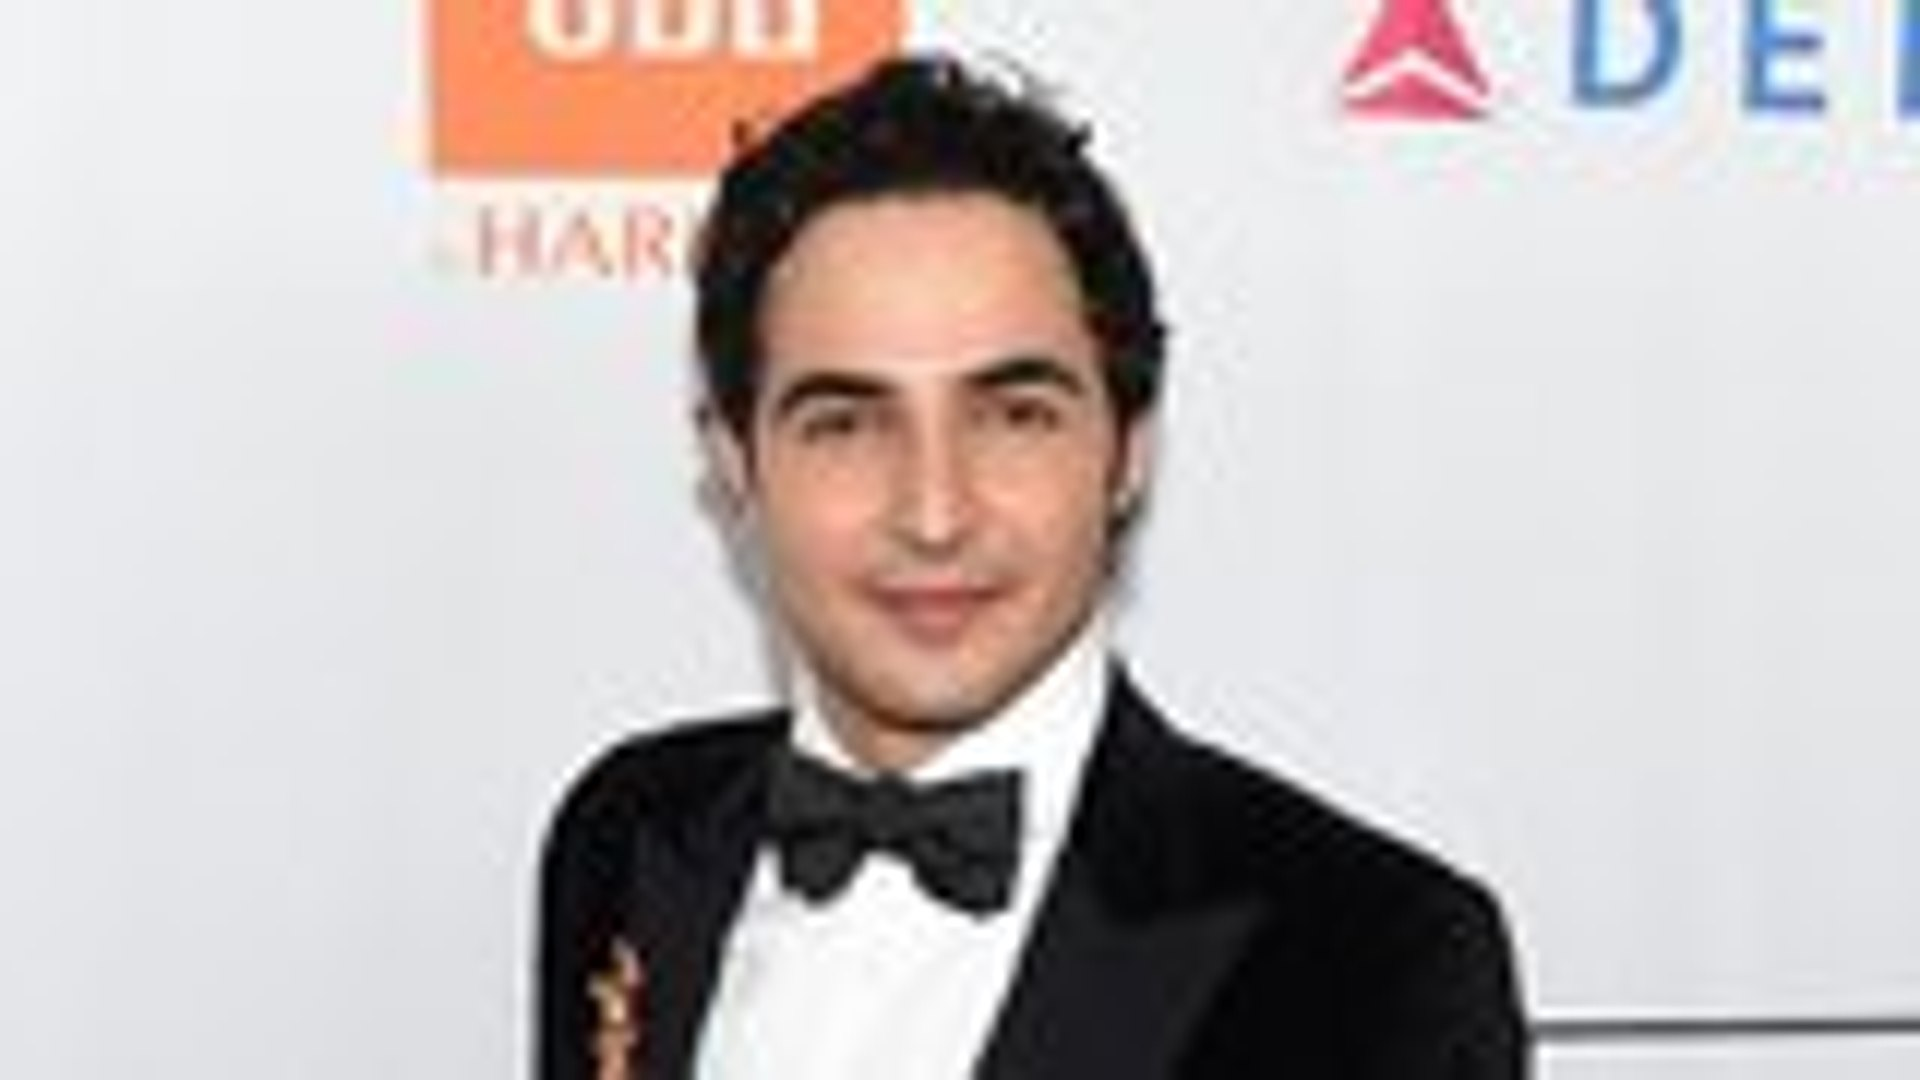 Zac Posen Talks Dressing Stars in 3D-Printed Designs For Met Gala | THR News